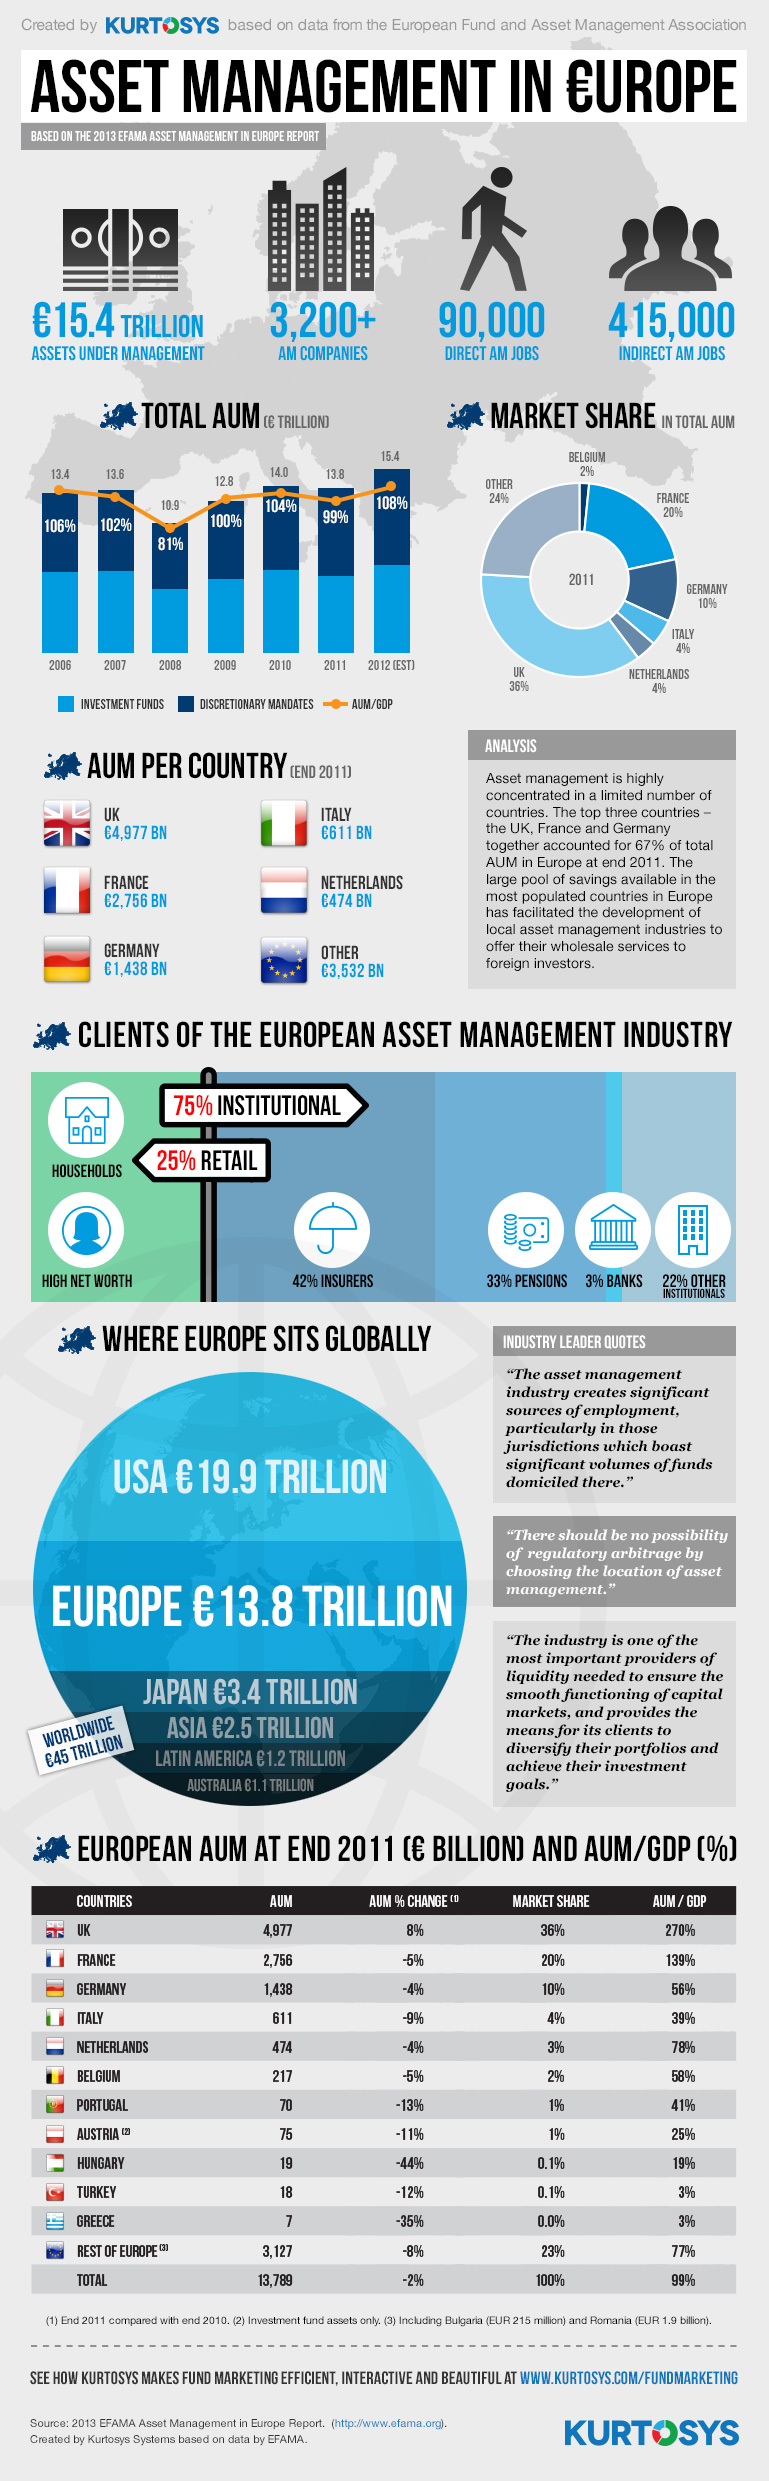 Asset Management Trends